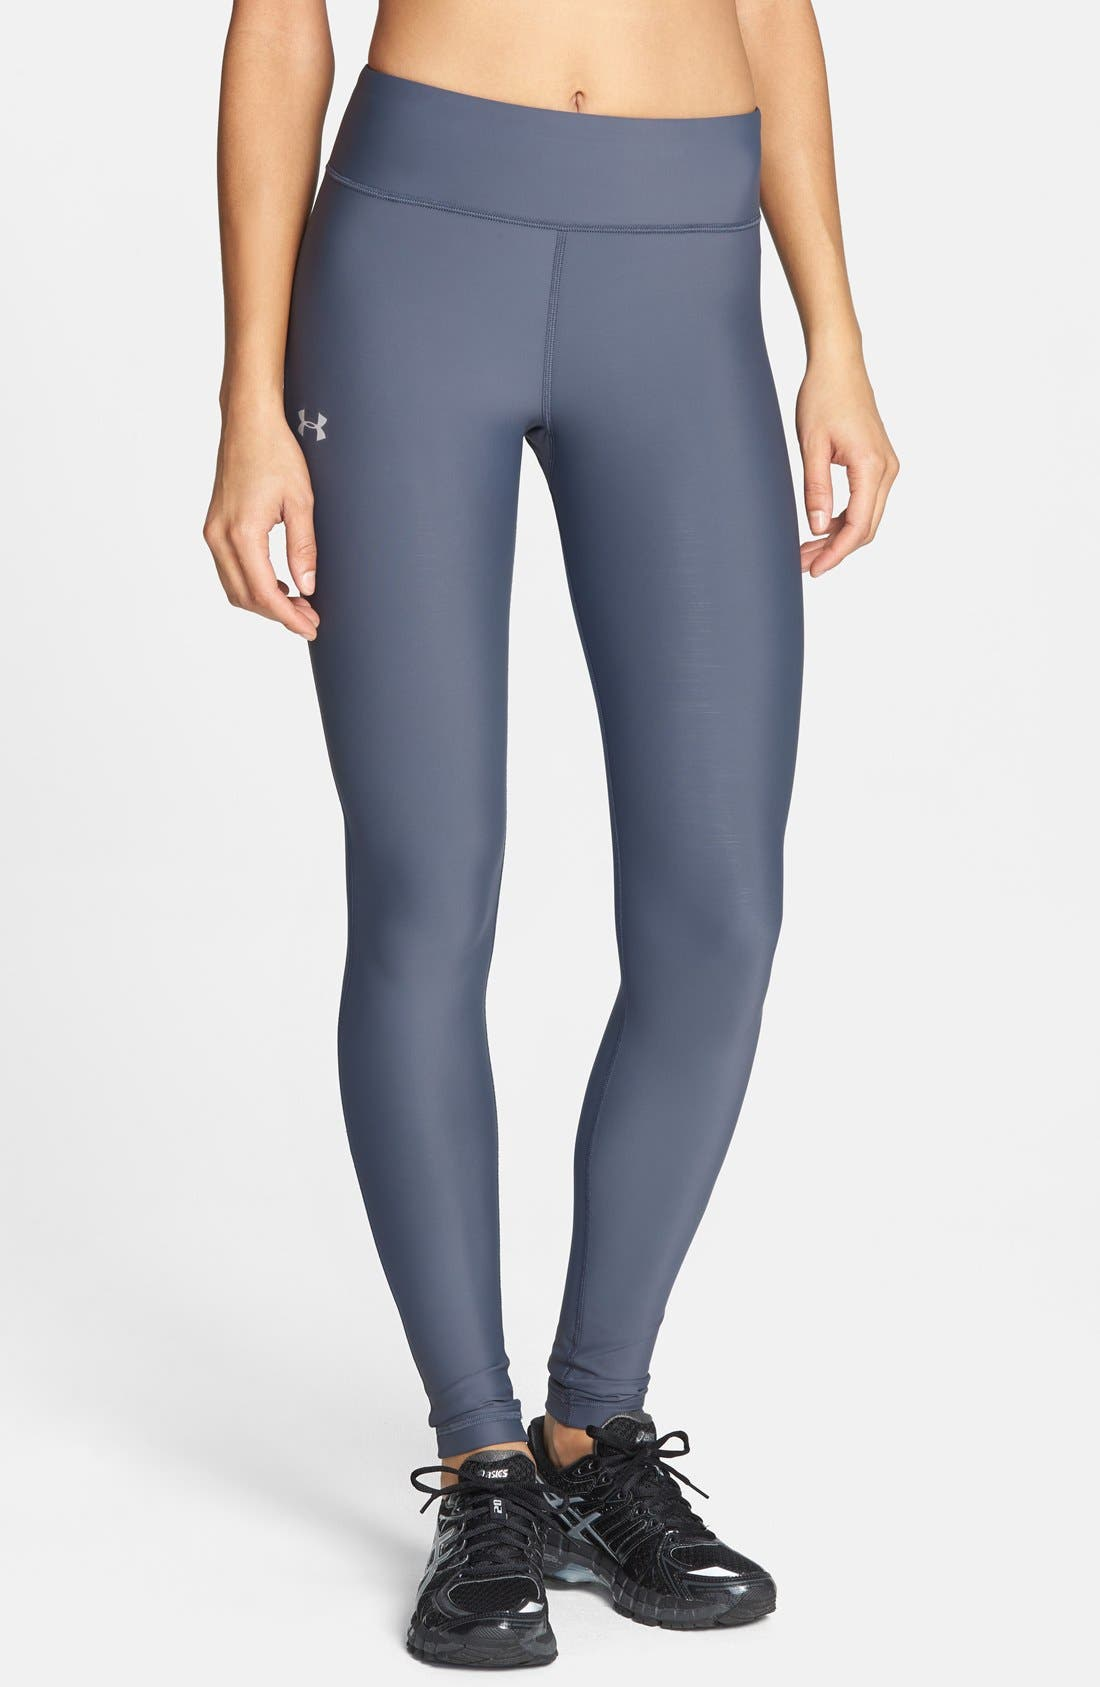 Main Image - Under Armour 'Authentic' Compression Tights